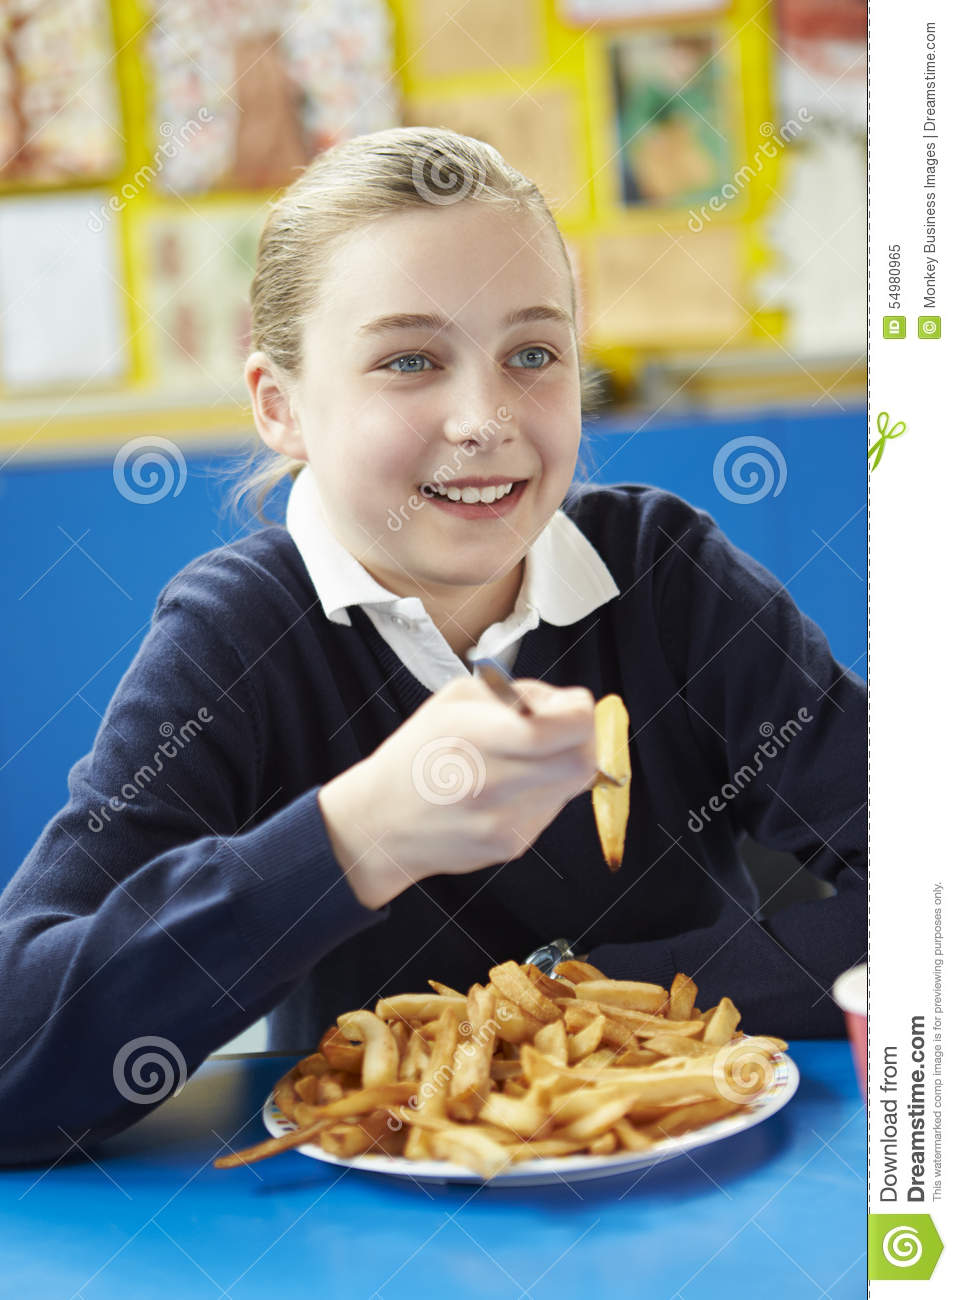 Female Pupil Eating Unhealthy School Lunch